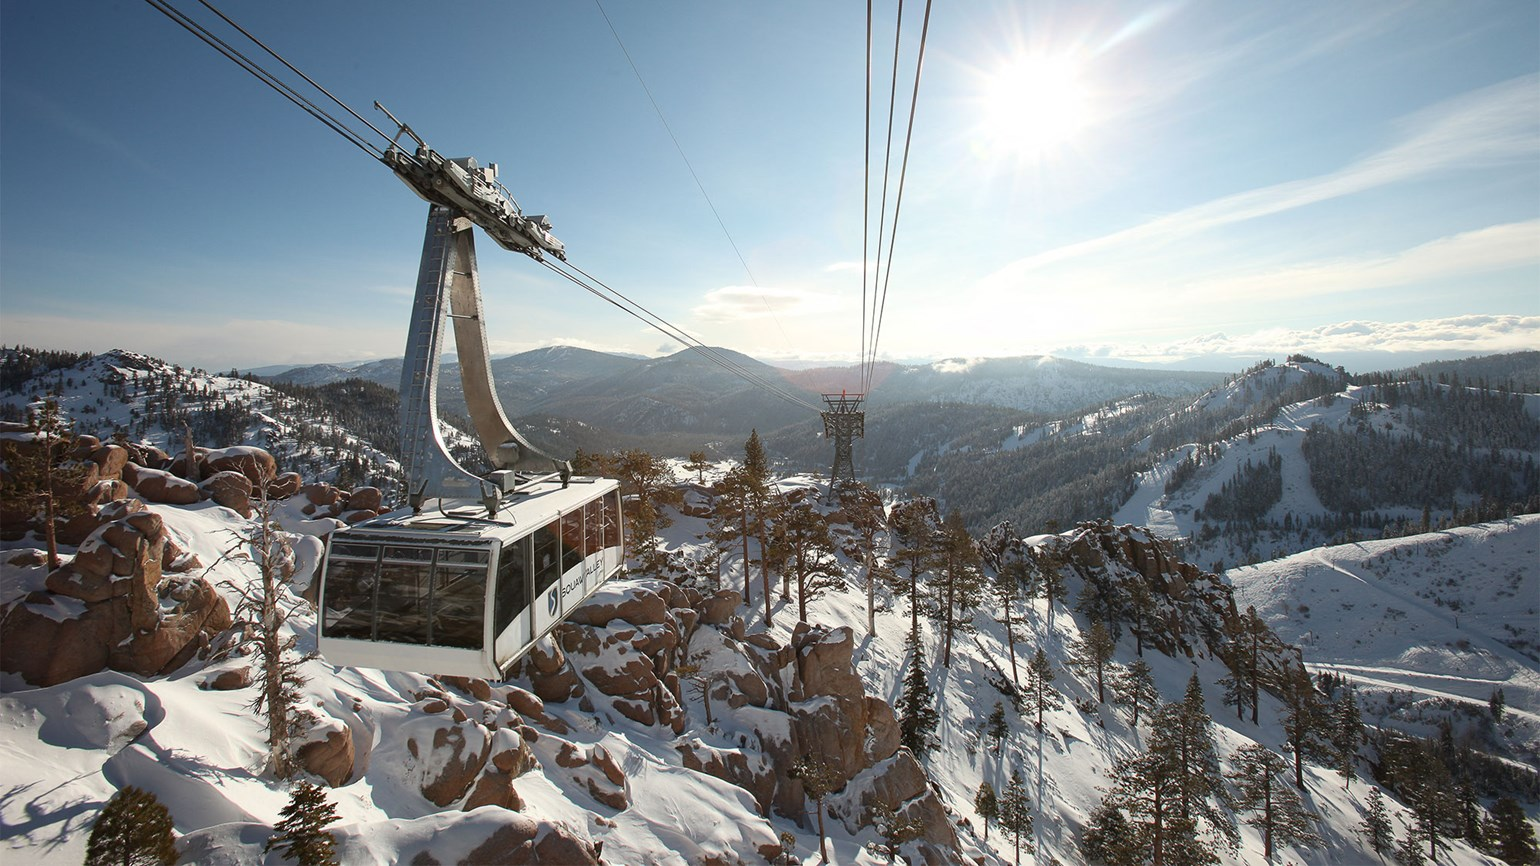 New gondola will connect Alterra's Squaw Valley and Alpine Meadows